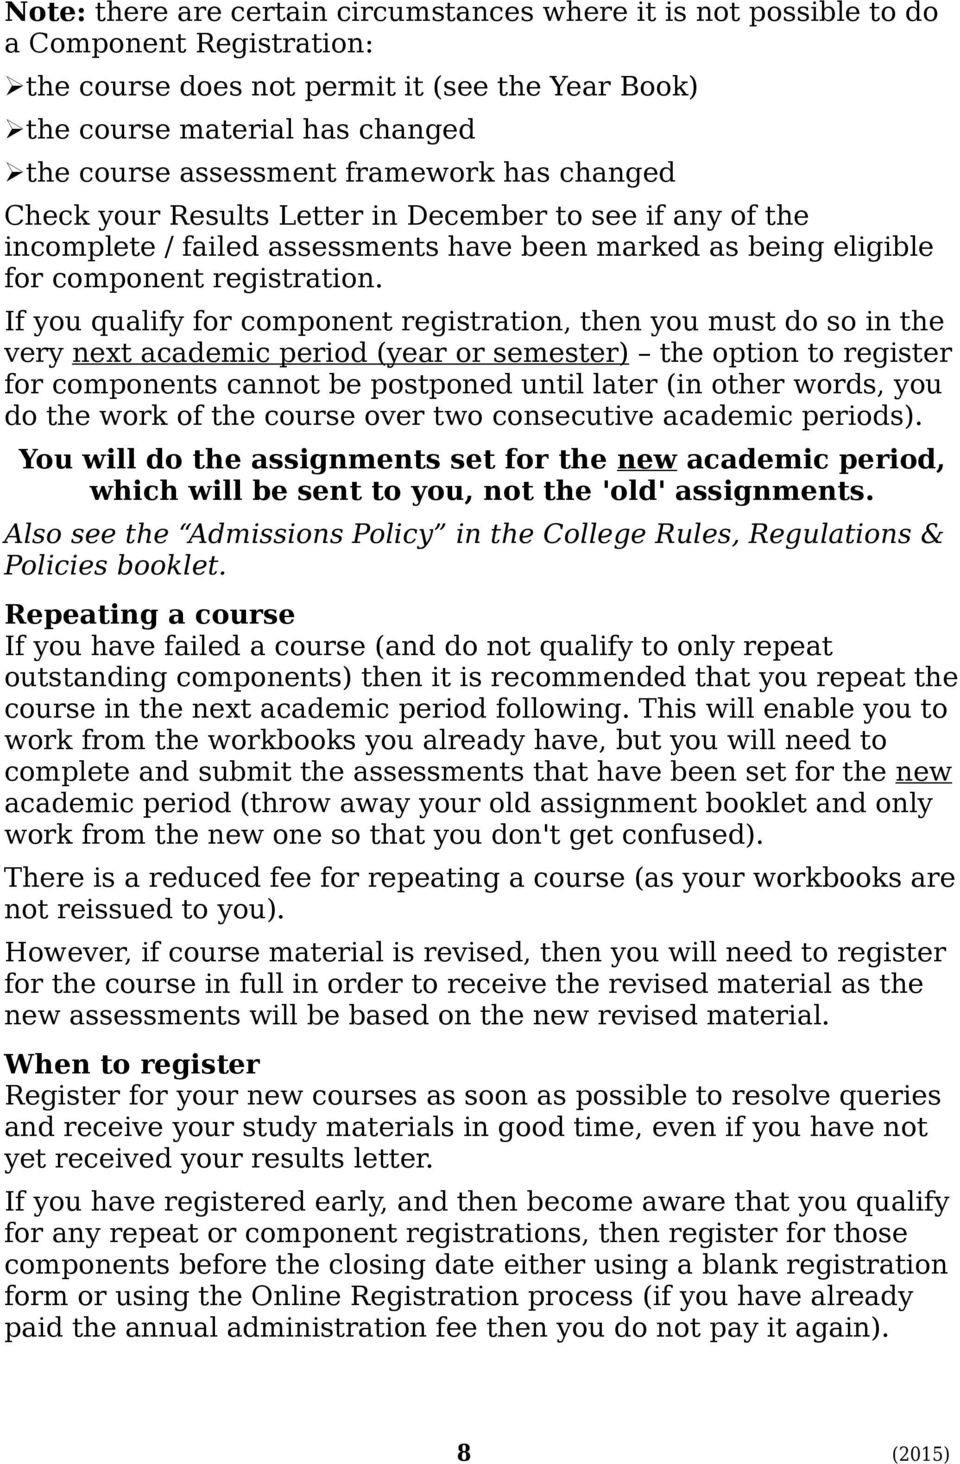 If you qualify for component registration, then you must do so in the very next academic period (year or semester) the option to register for components cannot be postponed until later (in other